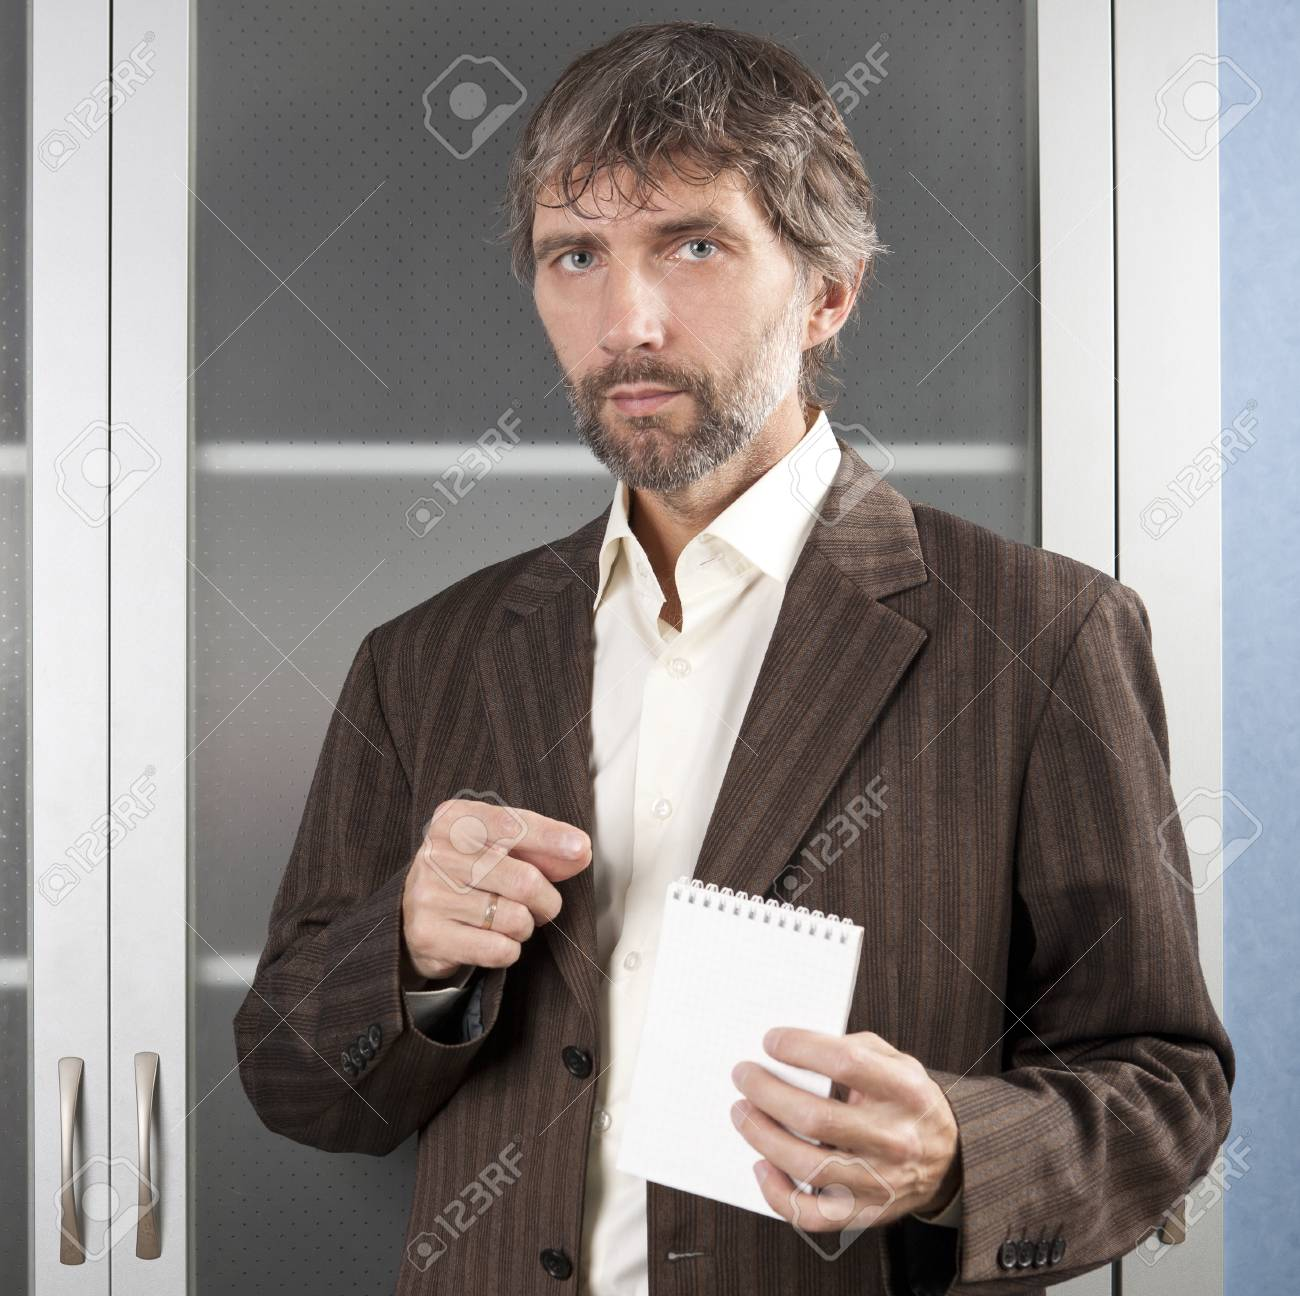 man in business suit shows blank Notepad Stock Photo - 16469820